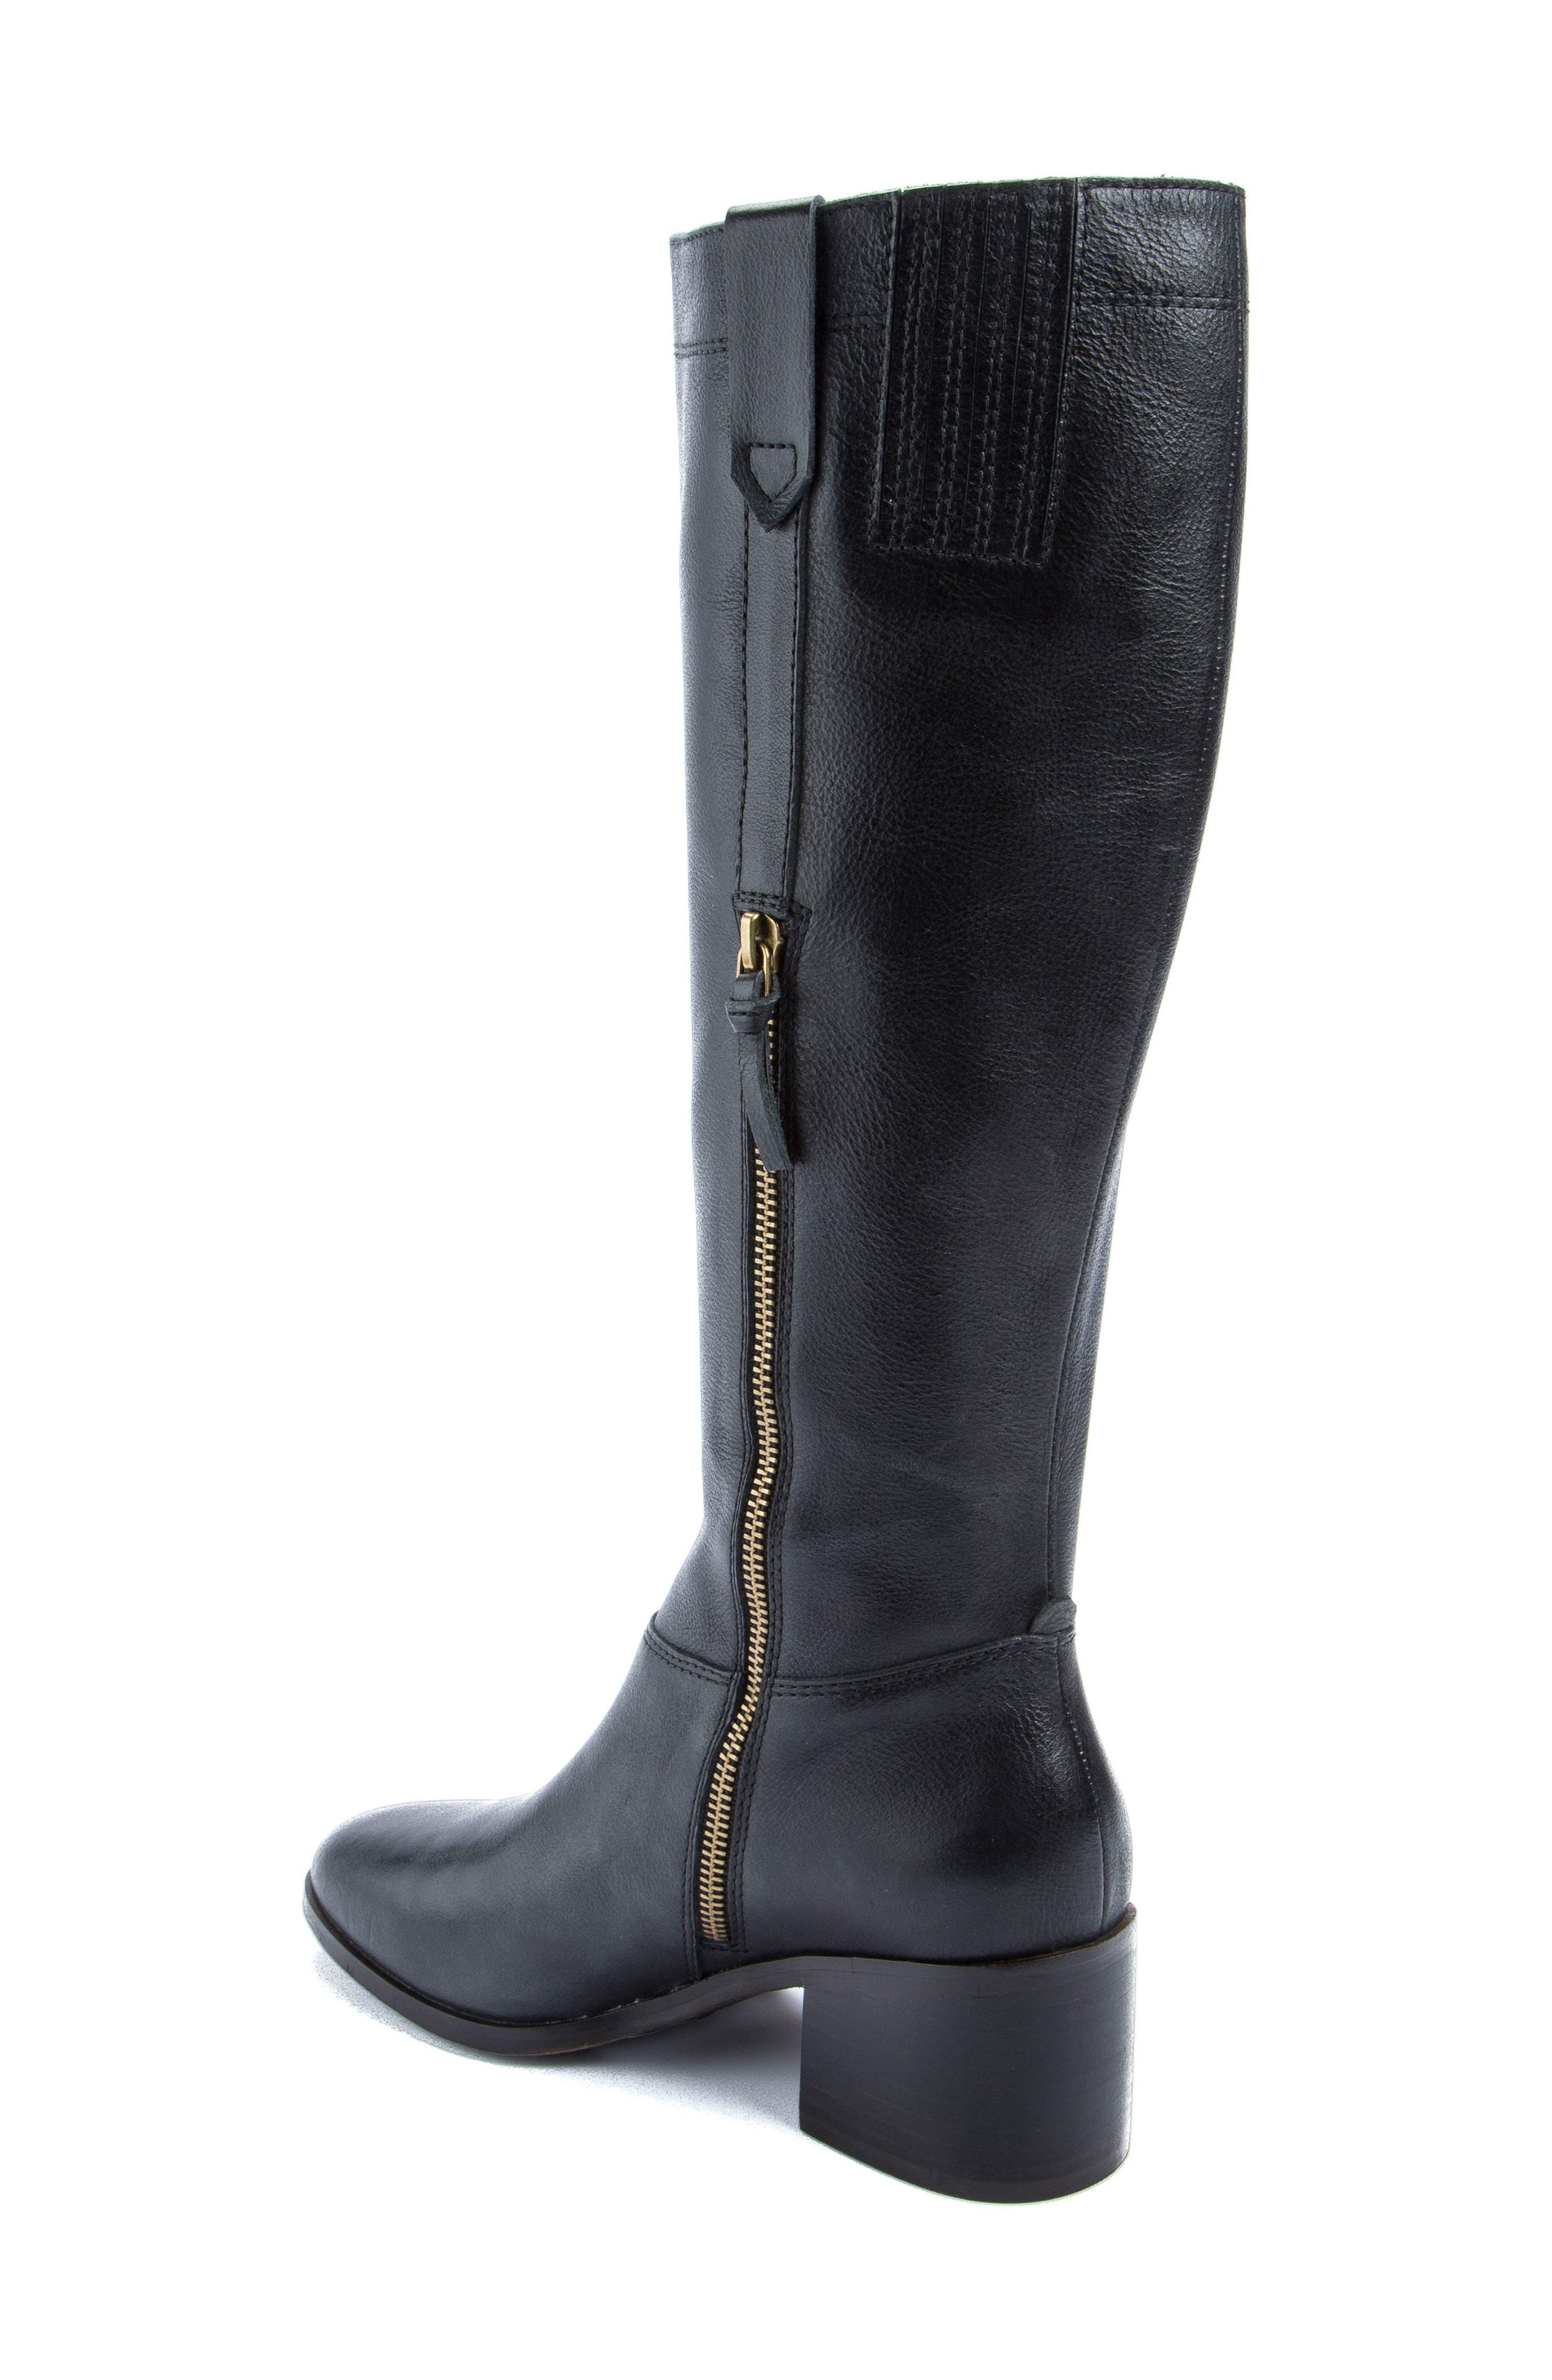 Diggity Knee-High Boot,                             Alternate thumbnail 2, color,                             001